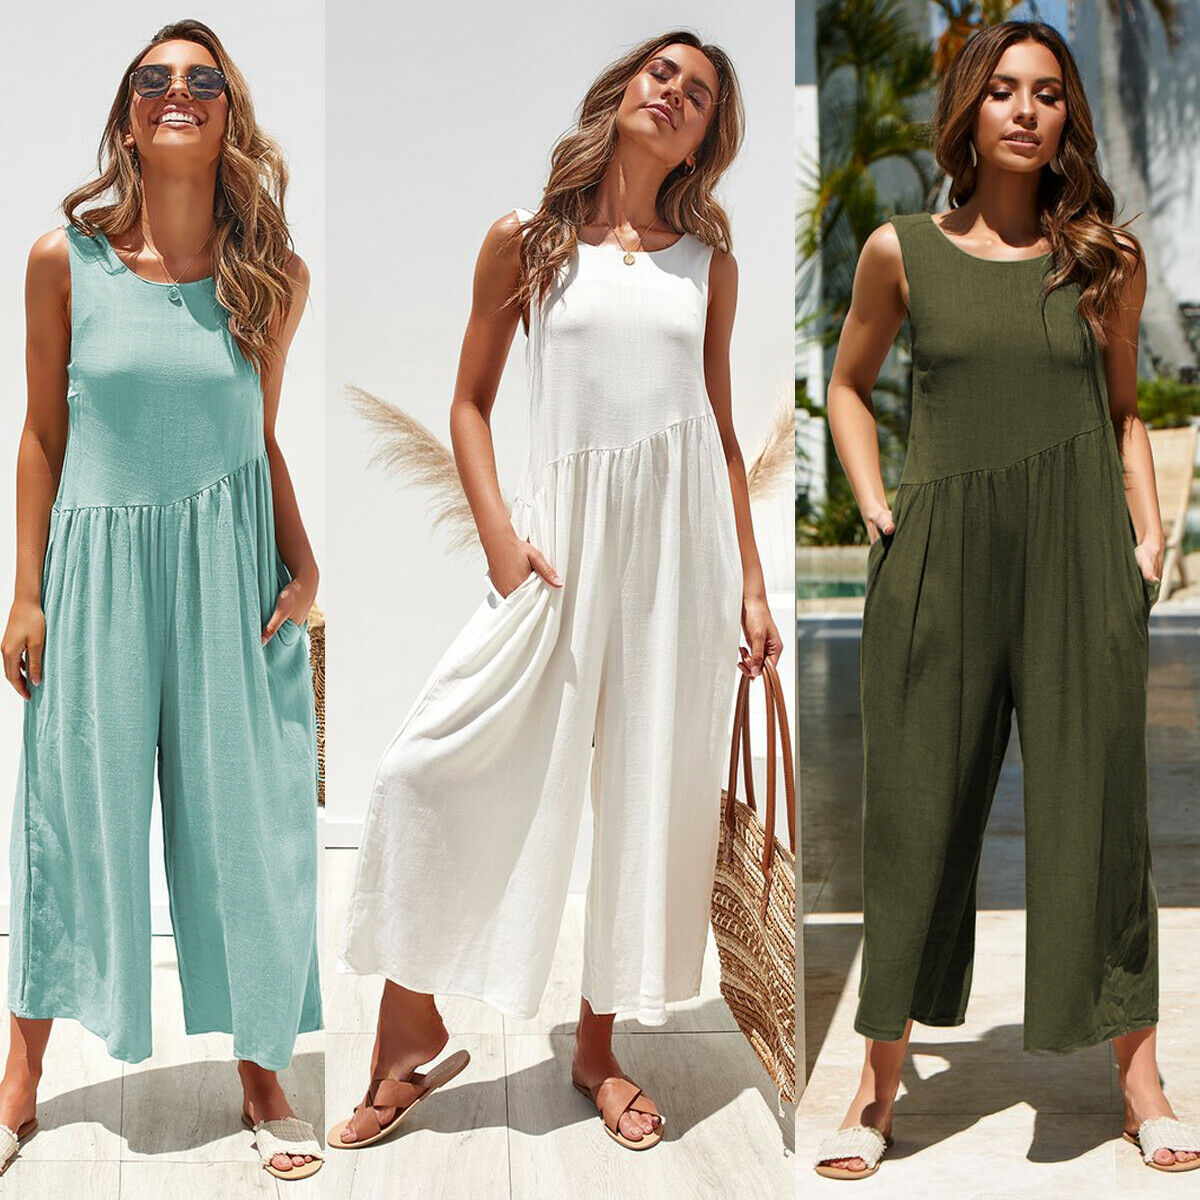 2019 Women Fashion Sleeveless Jumpsuit Romper Casual Backless Loose Clothes Wide Leg Pant Ladies Summer Playsuit S-XL